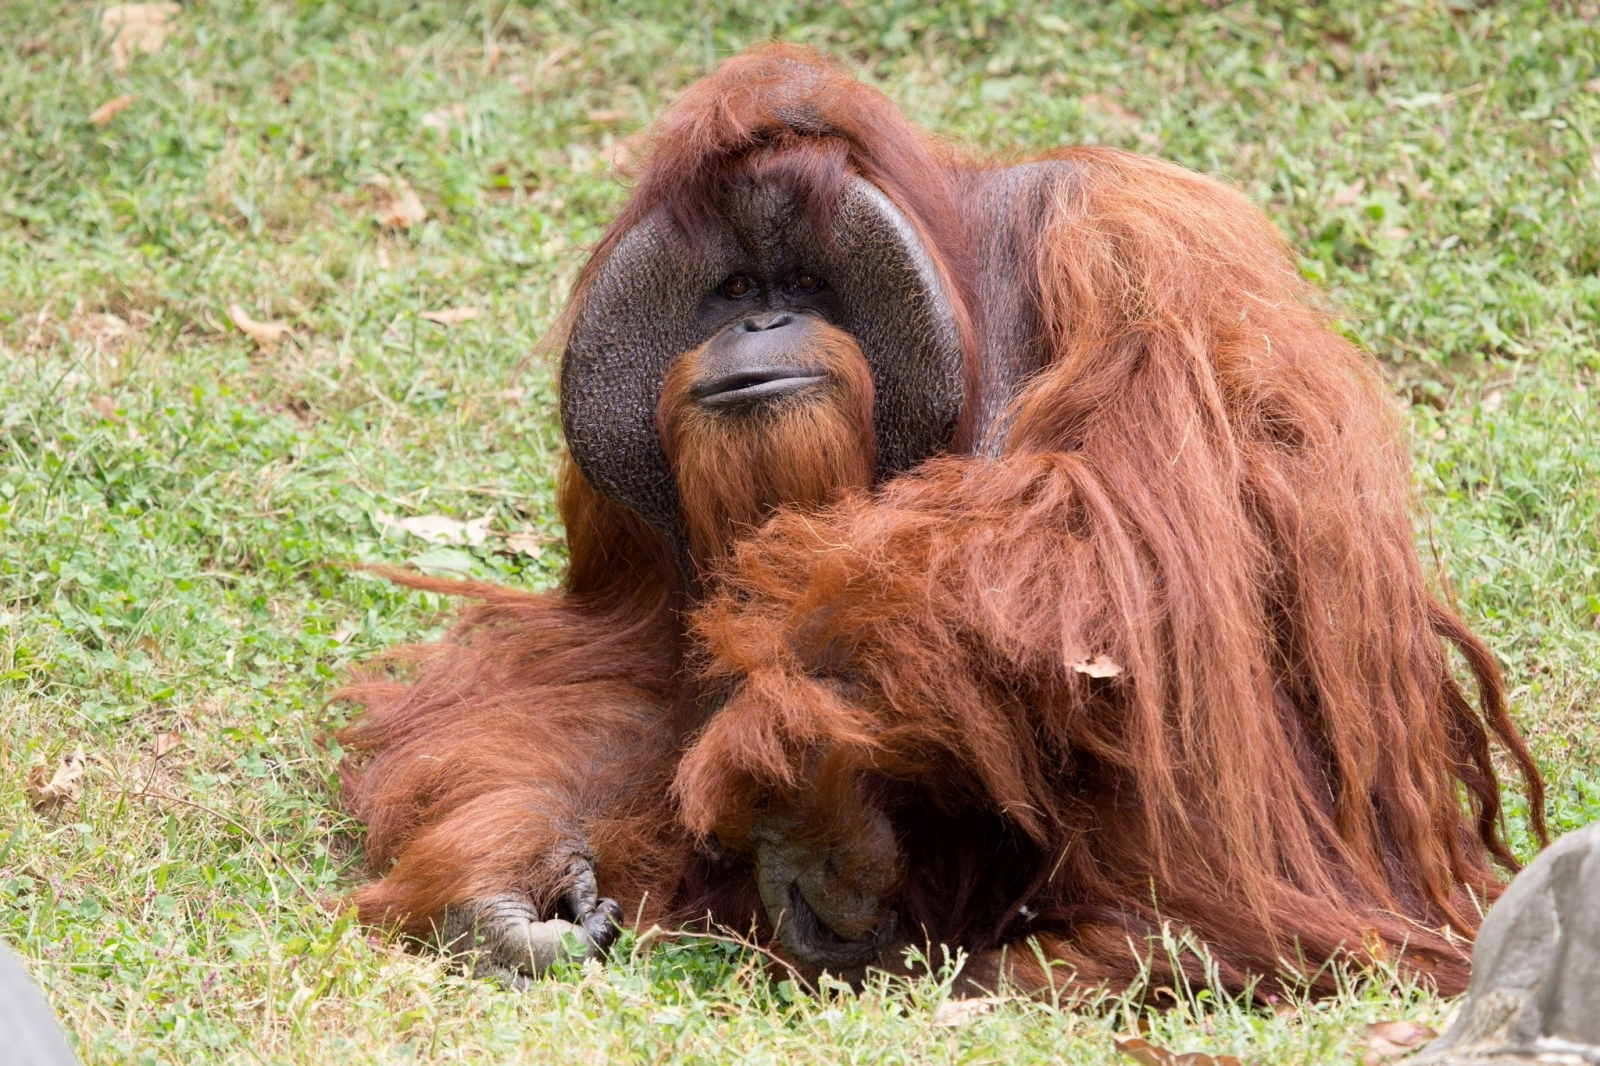 Orangutan Chantek, 'the ape who went to college', is dead